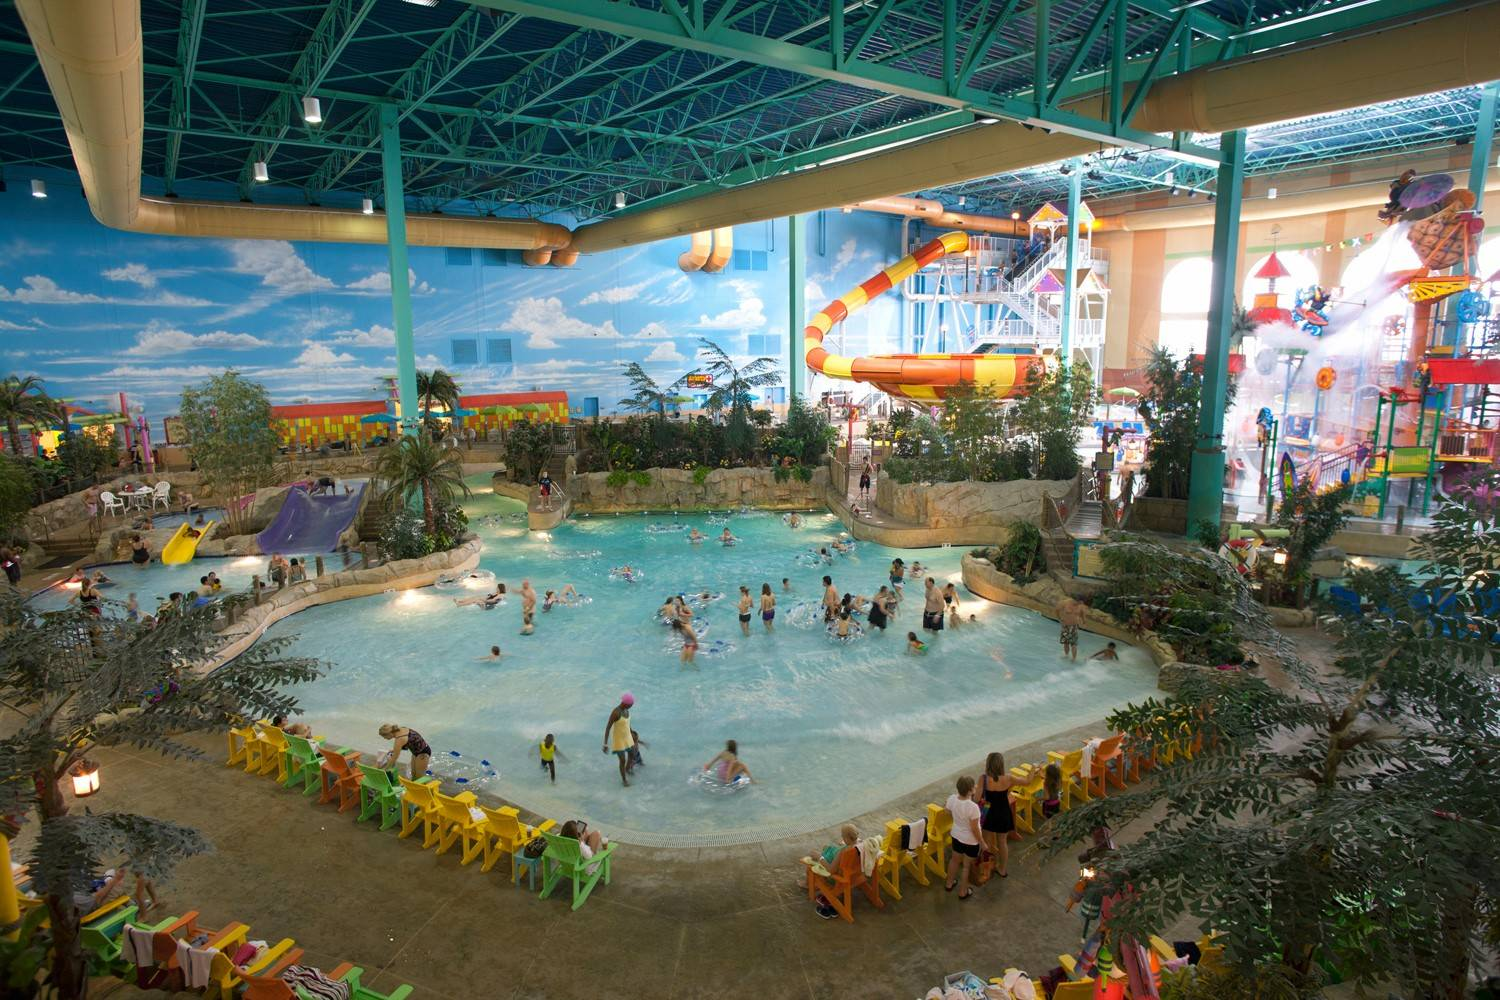 It's always sunny and 84 degrees inside KeyLime Cove's indoor water park in Gurnee.